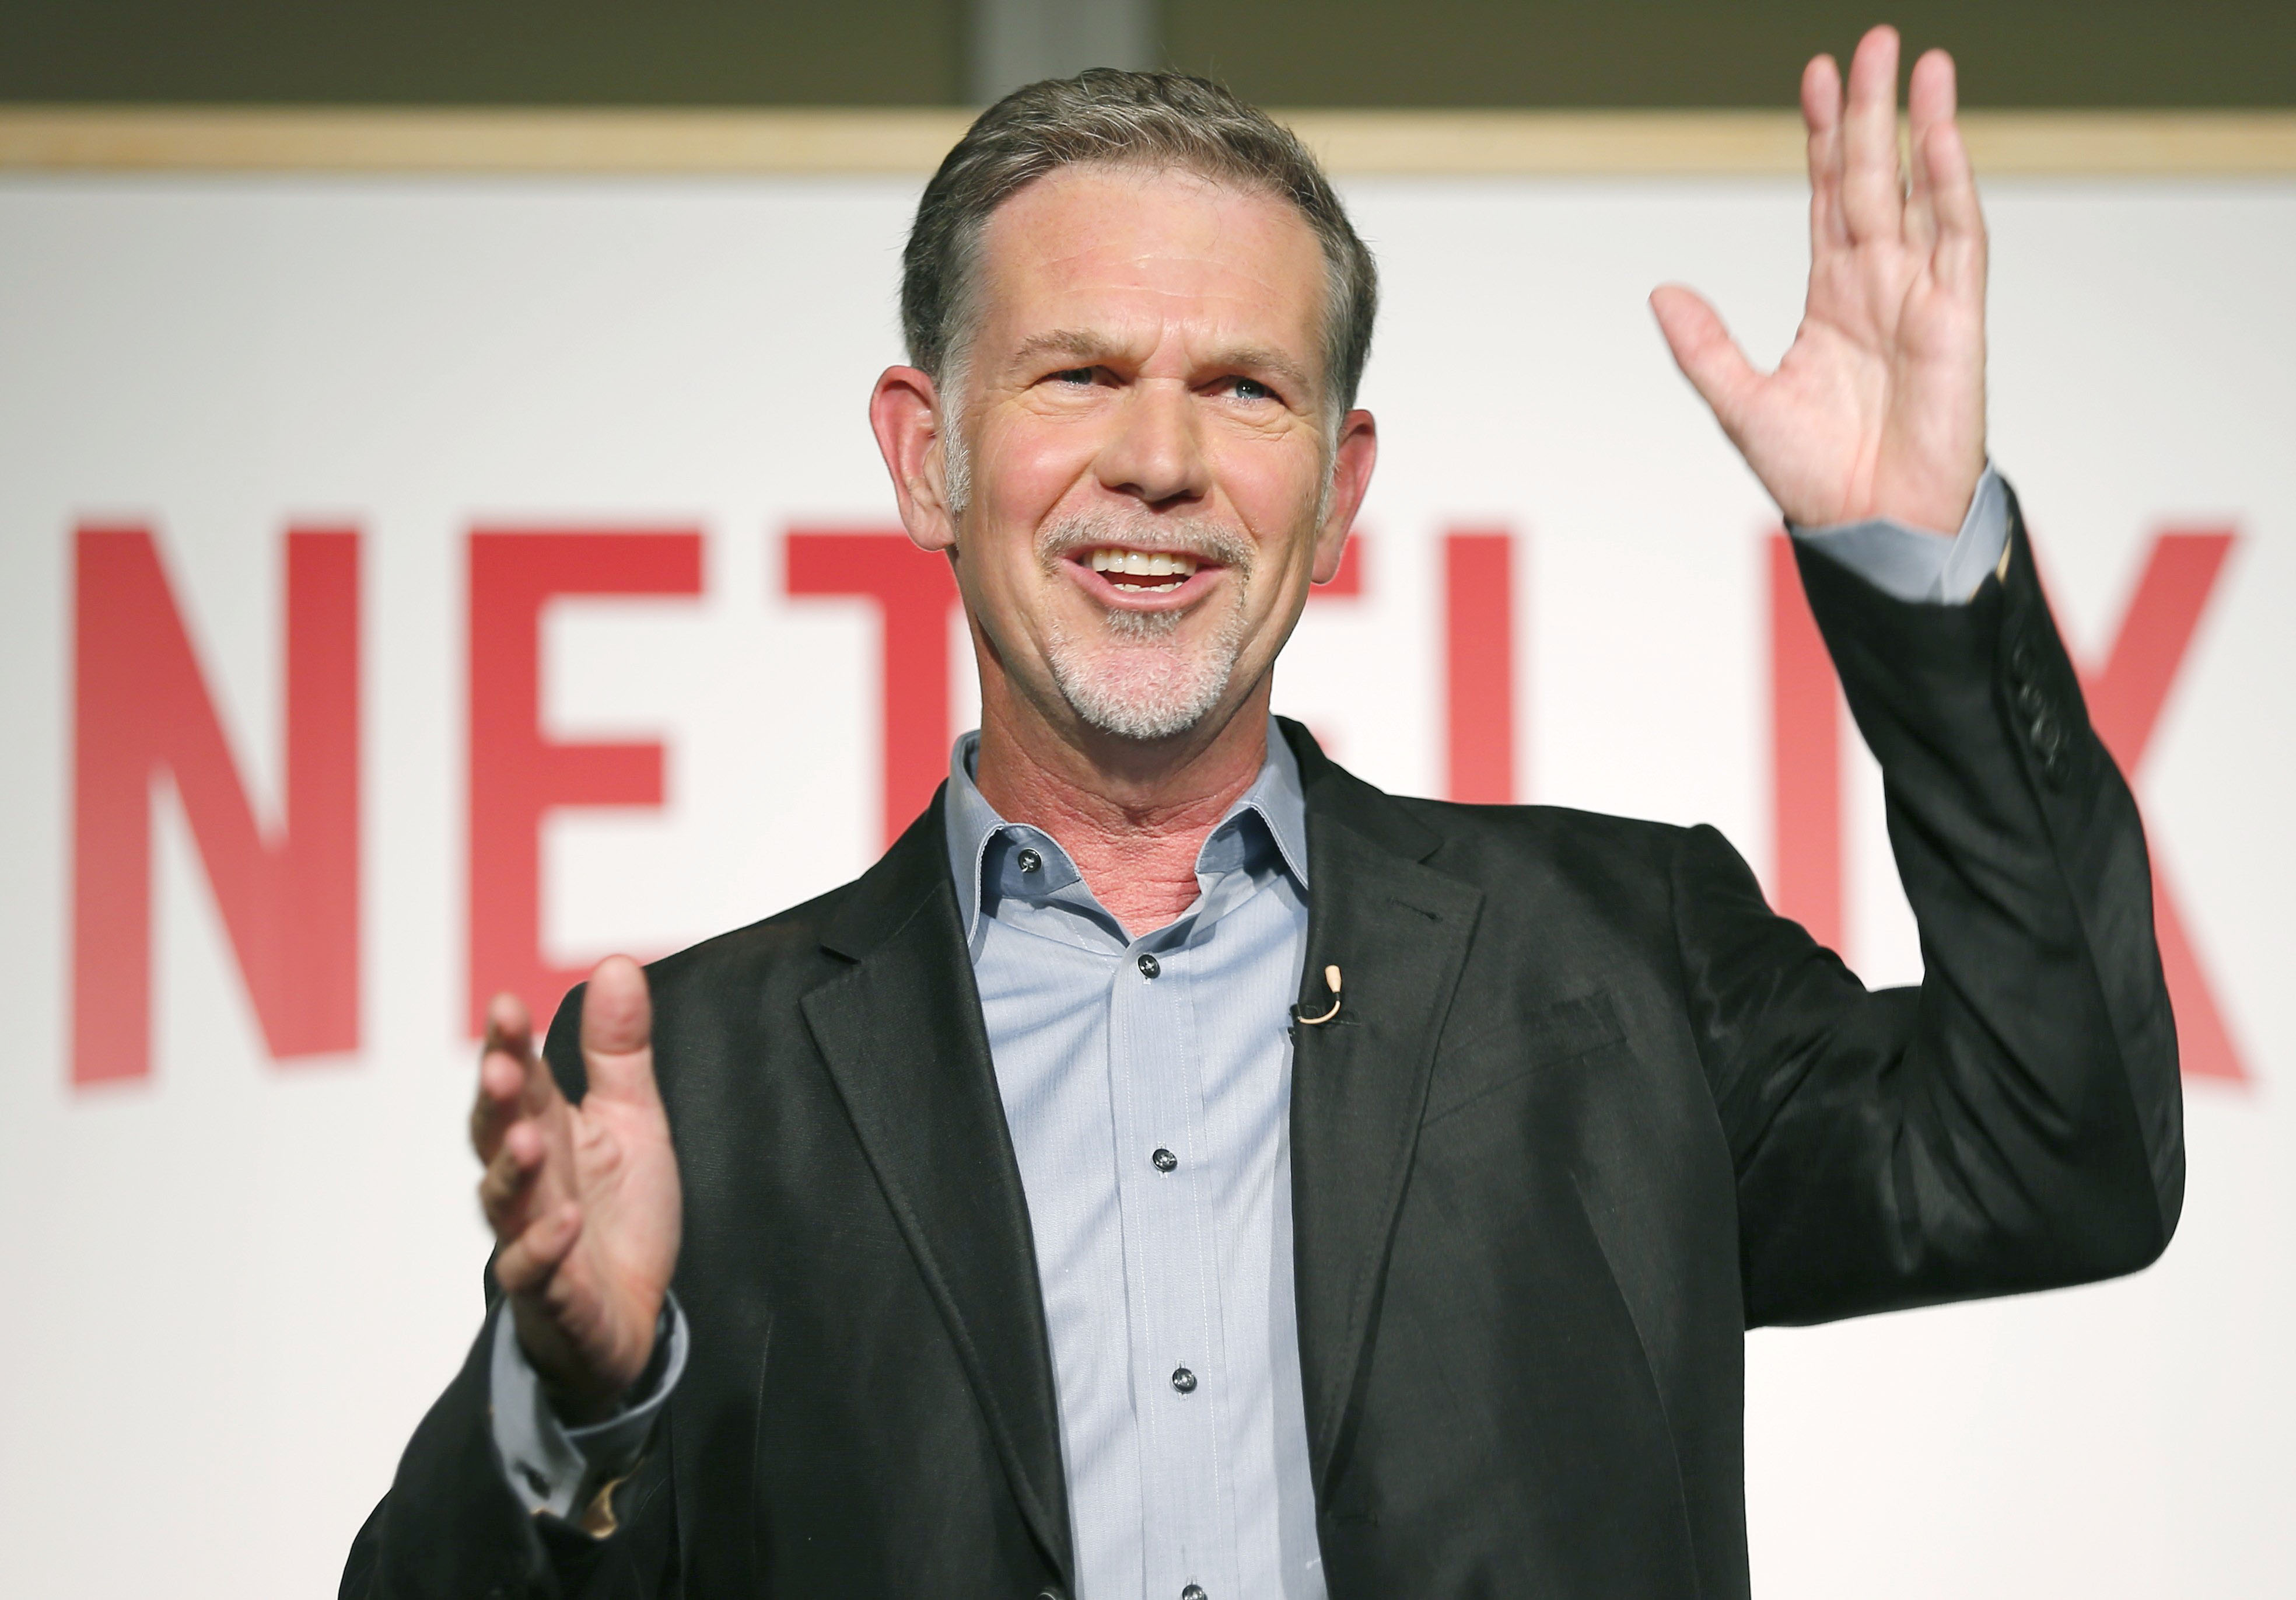 Netflix CEO Reed Hastings in Tokyo on Sept. 1, 2015.